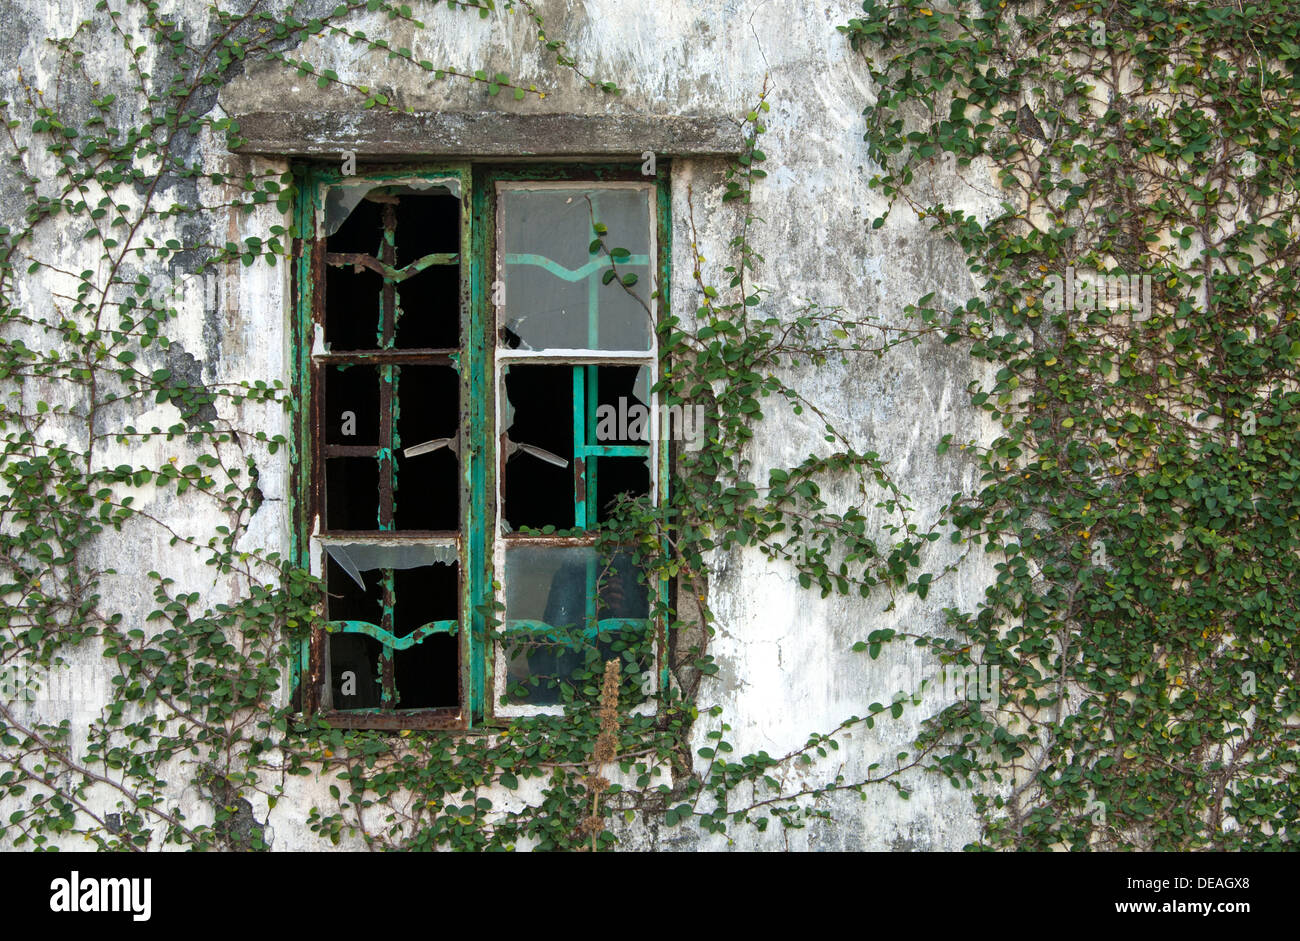 Broken window of an abandoned house in an abandoned village, Chek Keng, Hong Kong, Hong Kong, China, People's Republic of China - Stock Image